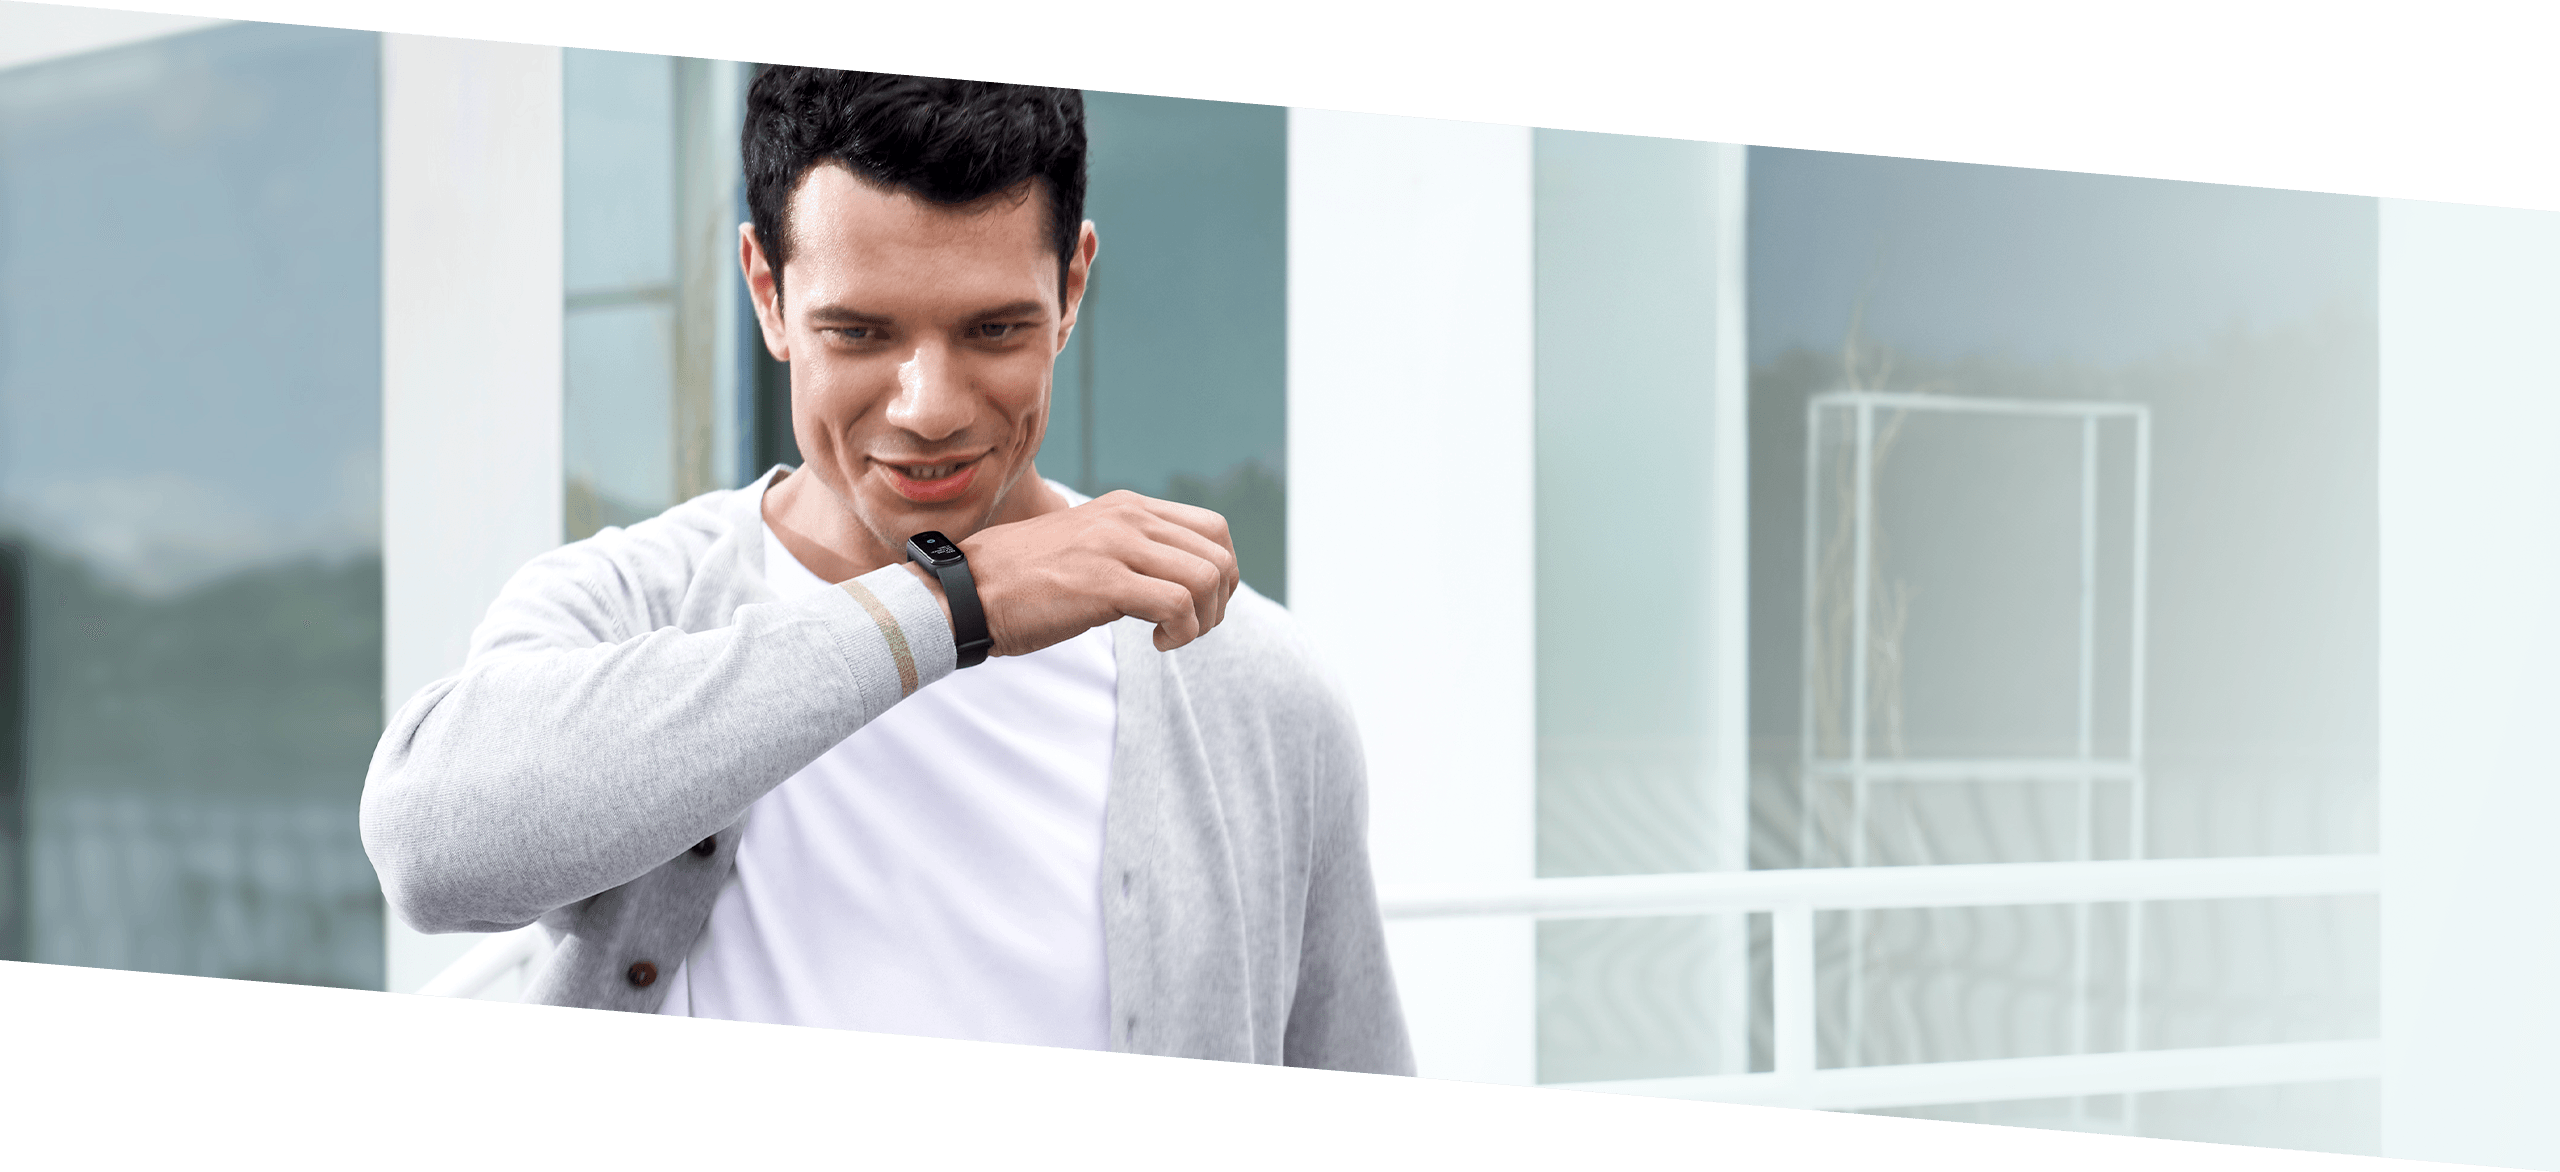 Amazfit Band 5 - Using Alexa